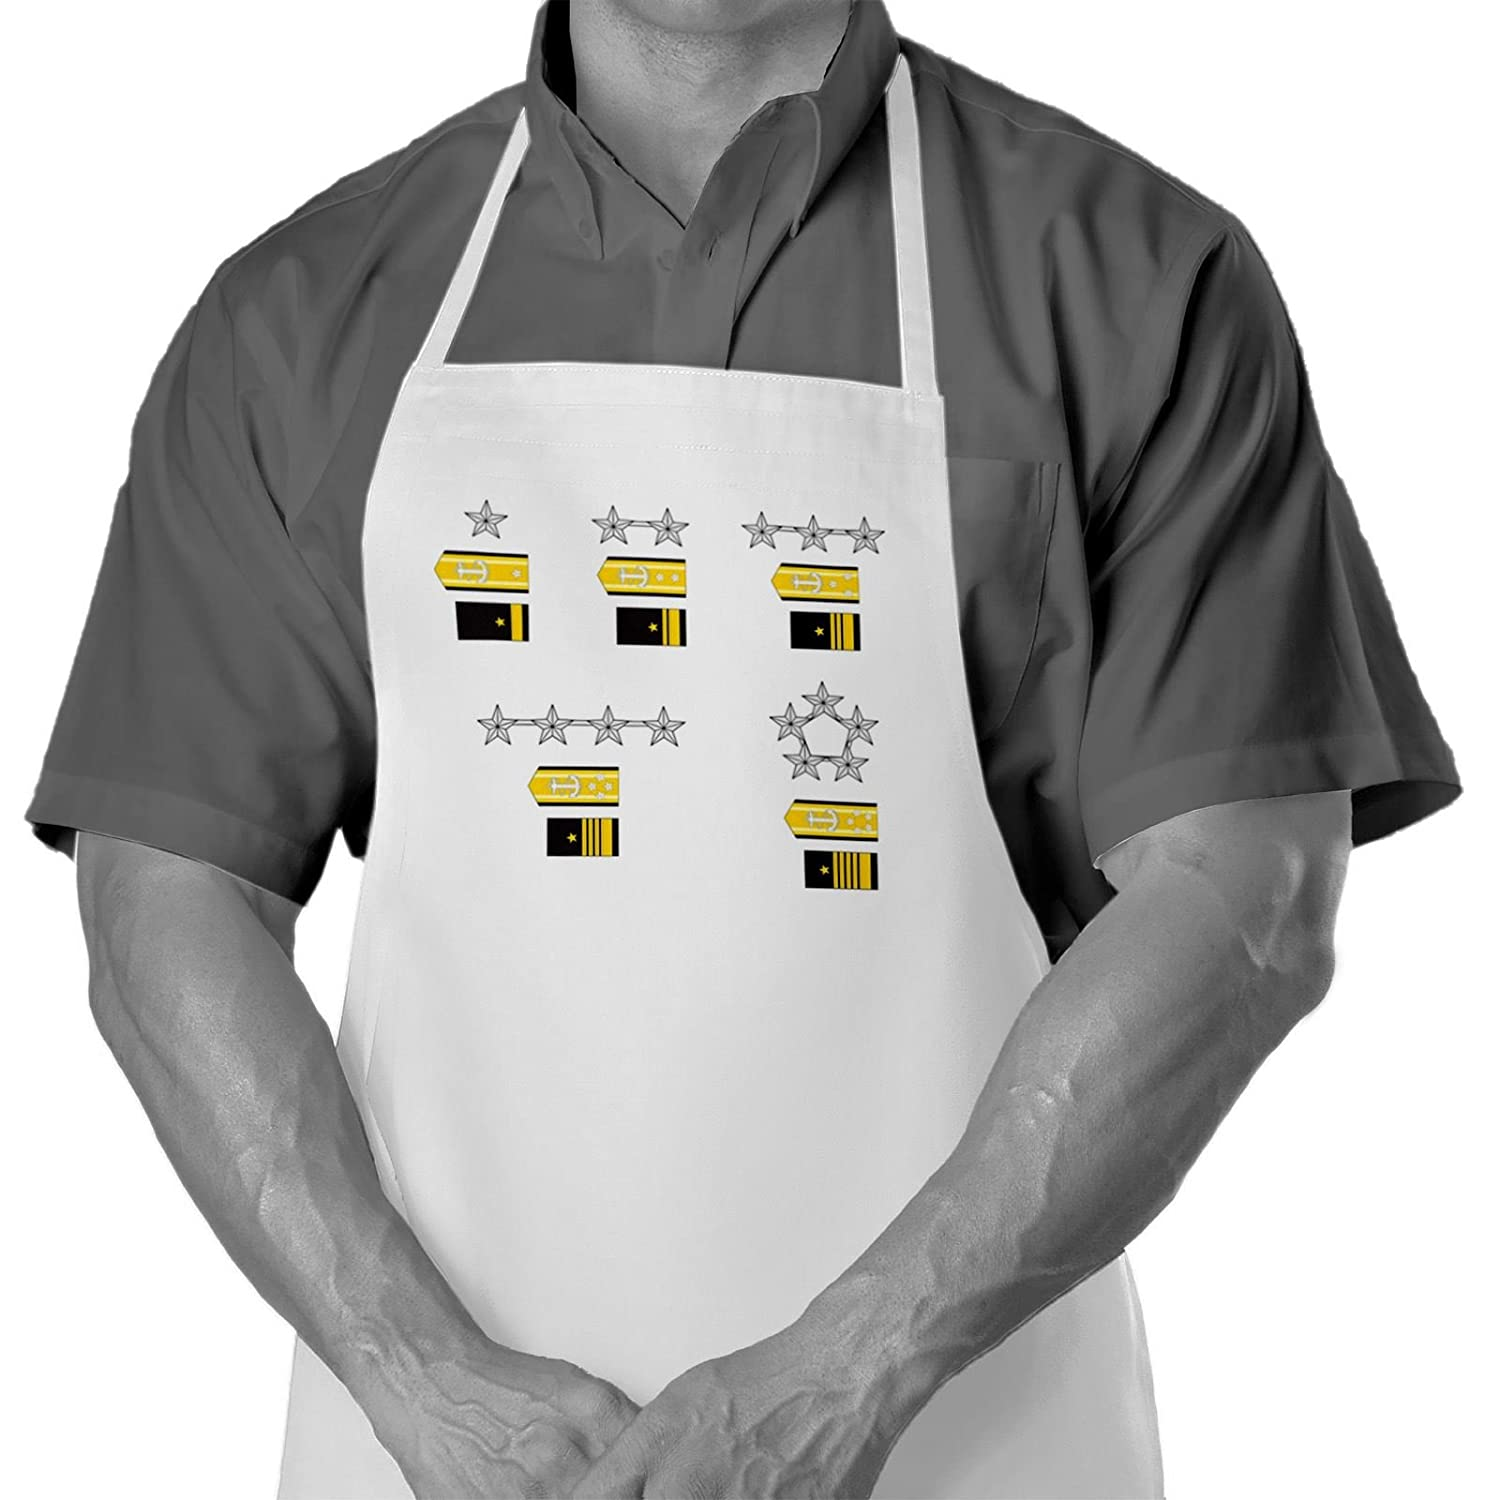 Cooking/Grilling Apron with US Navy, officer rank insignia (admirals) - Durable Spun Polyesther - Softer than cotton